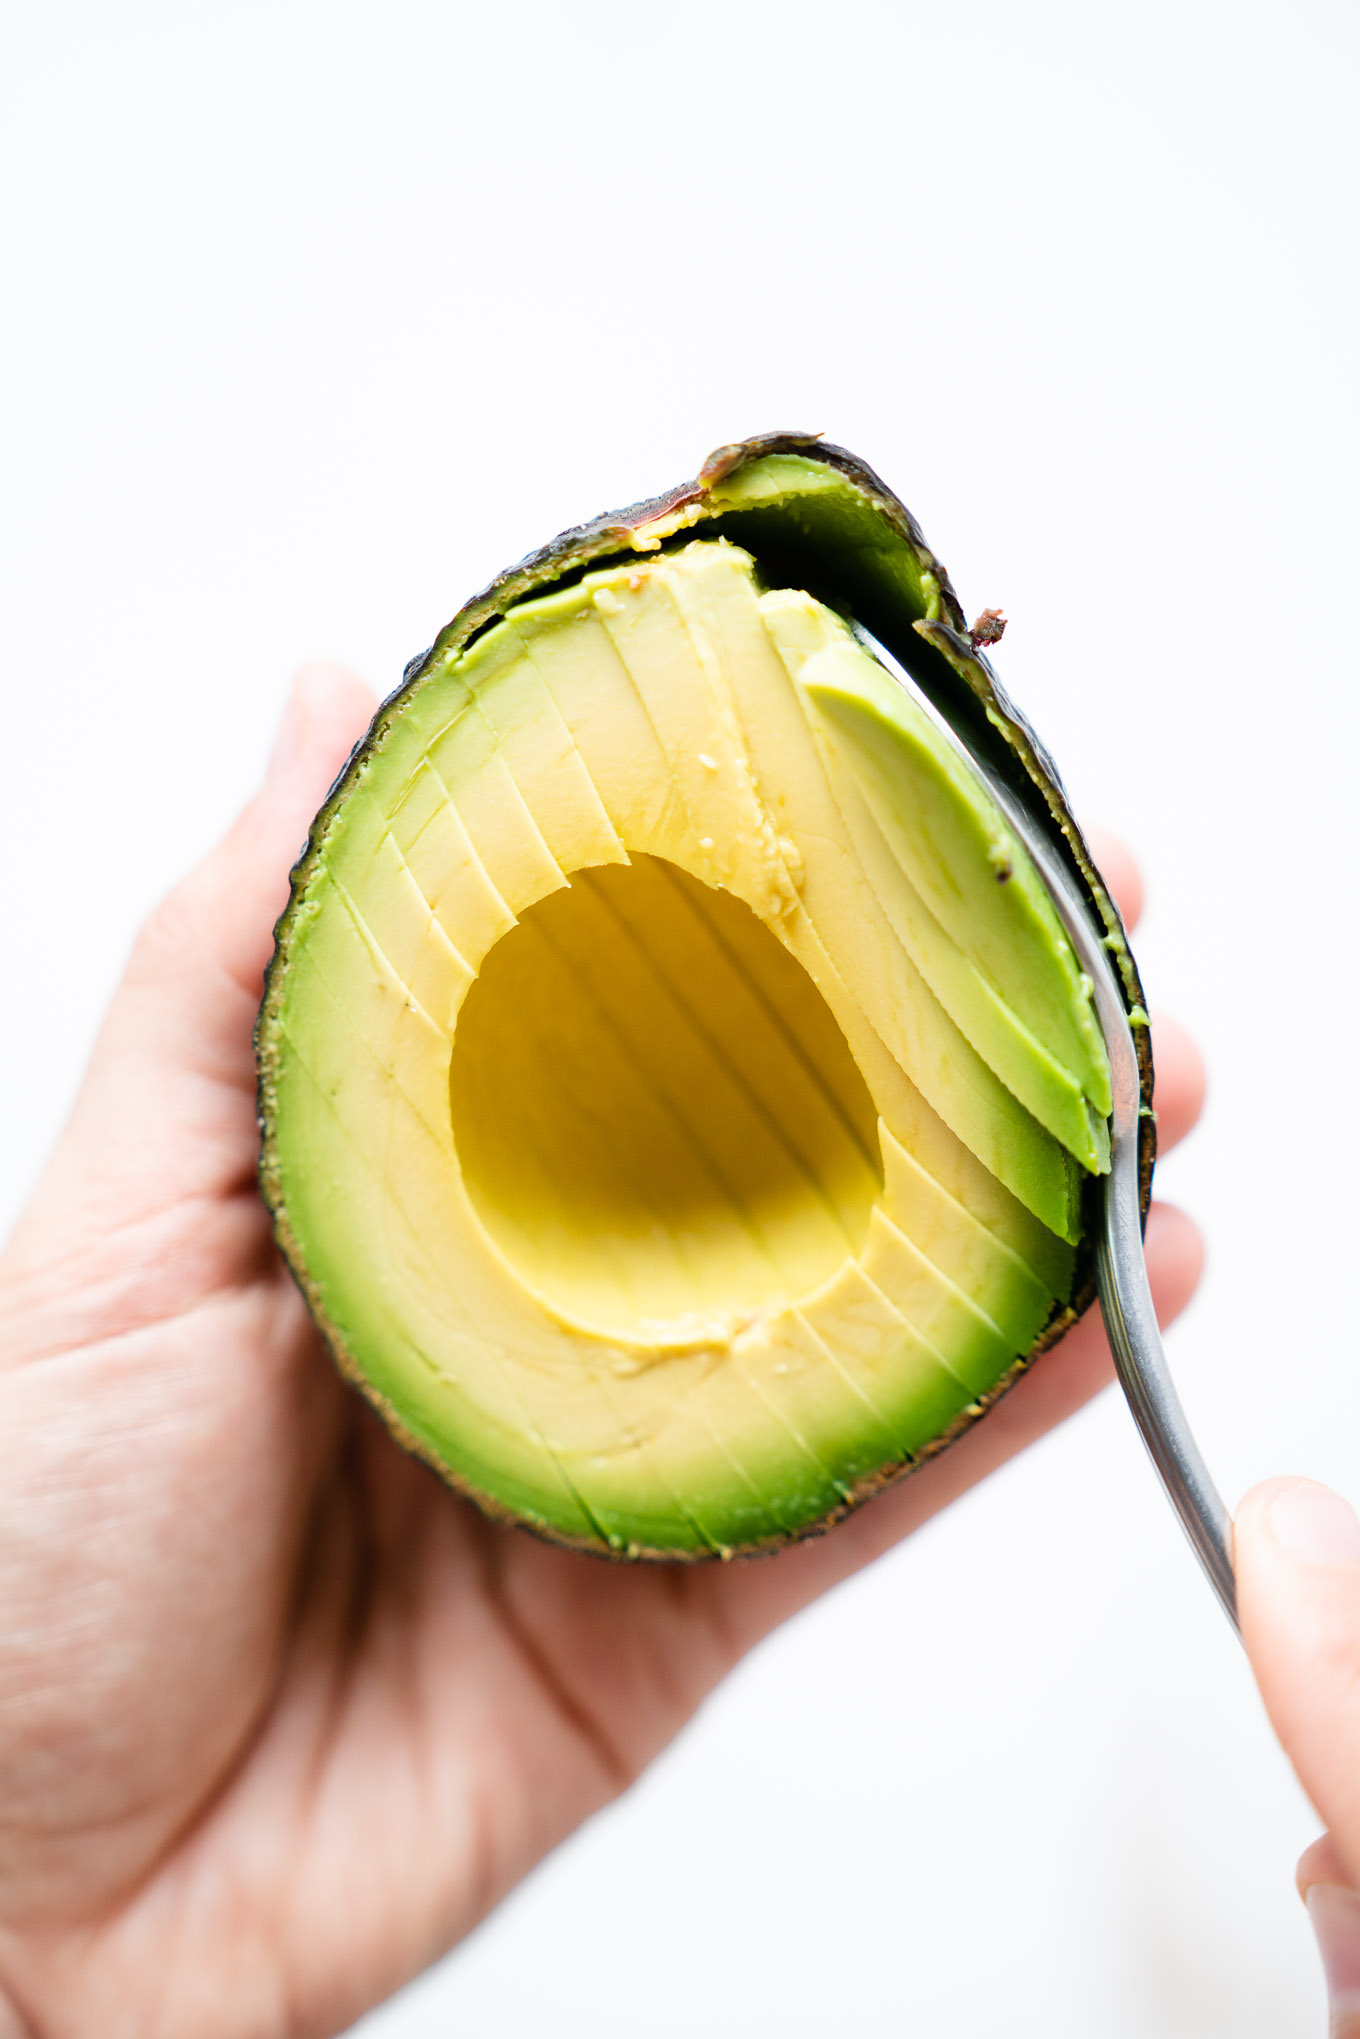 Avocado slices being scooped out with a spoon